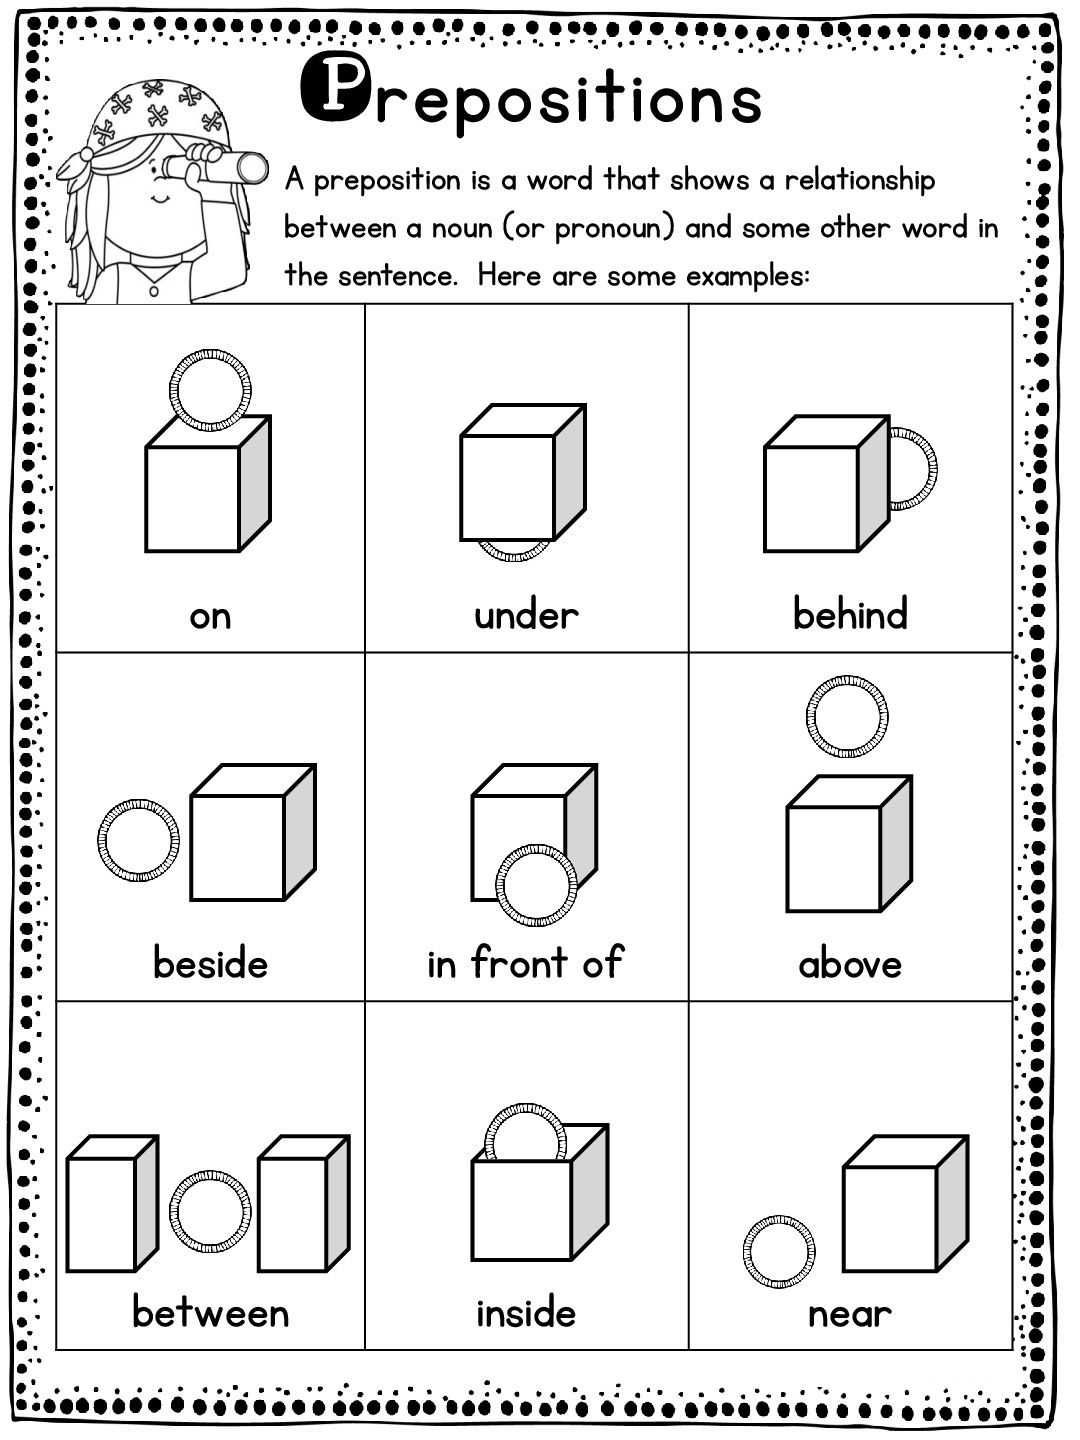 Preposition Word Search Worksheet